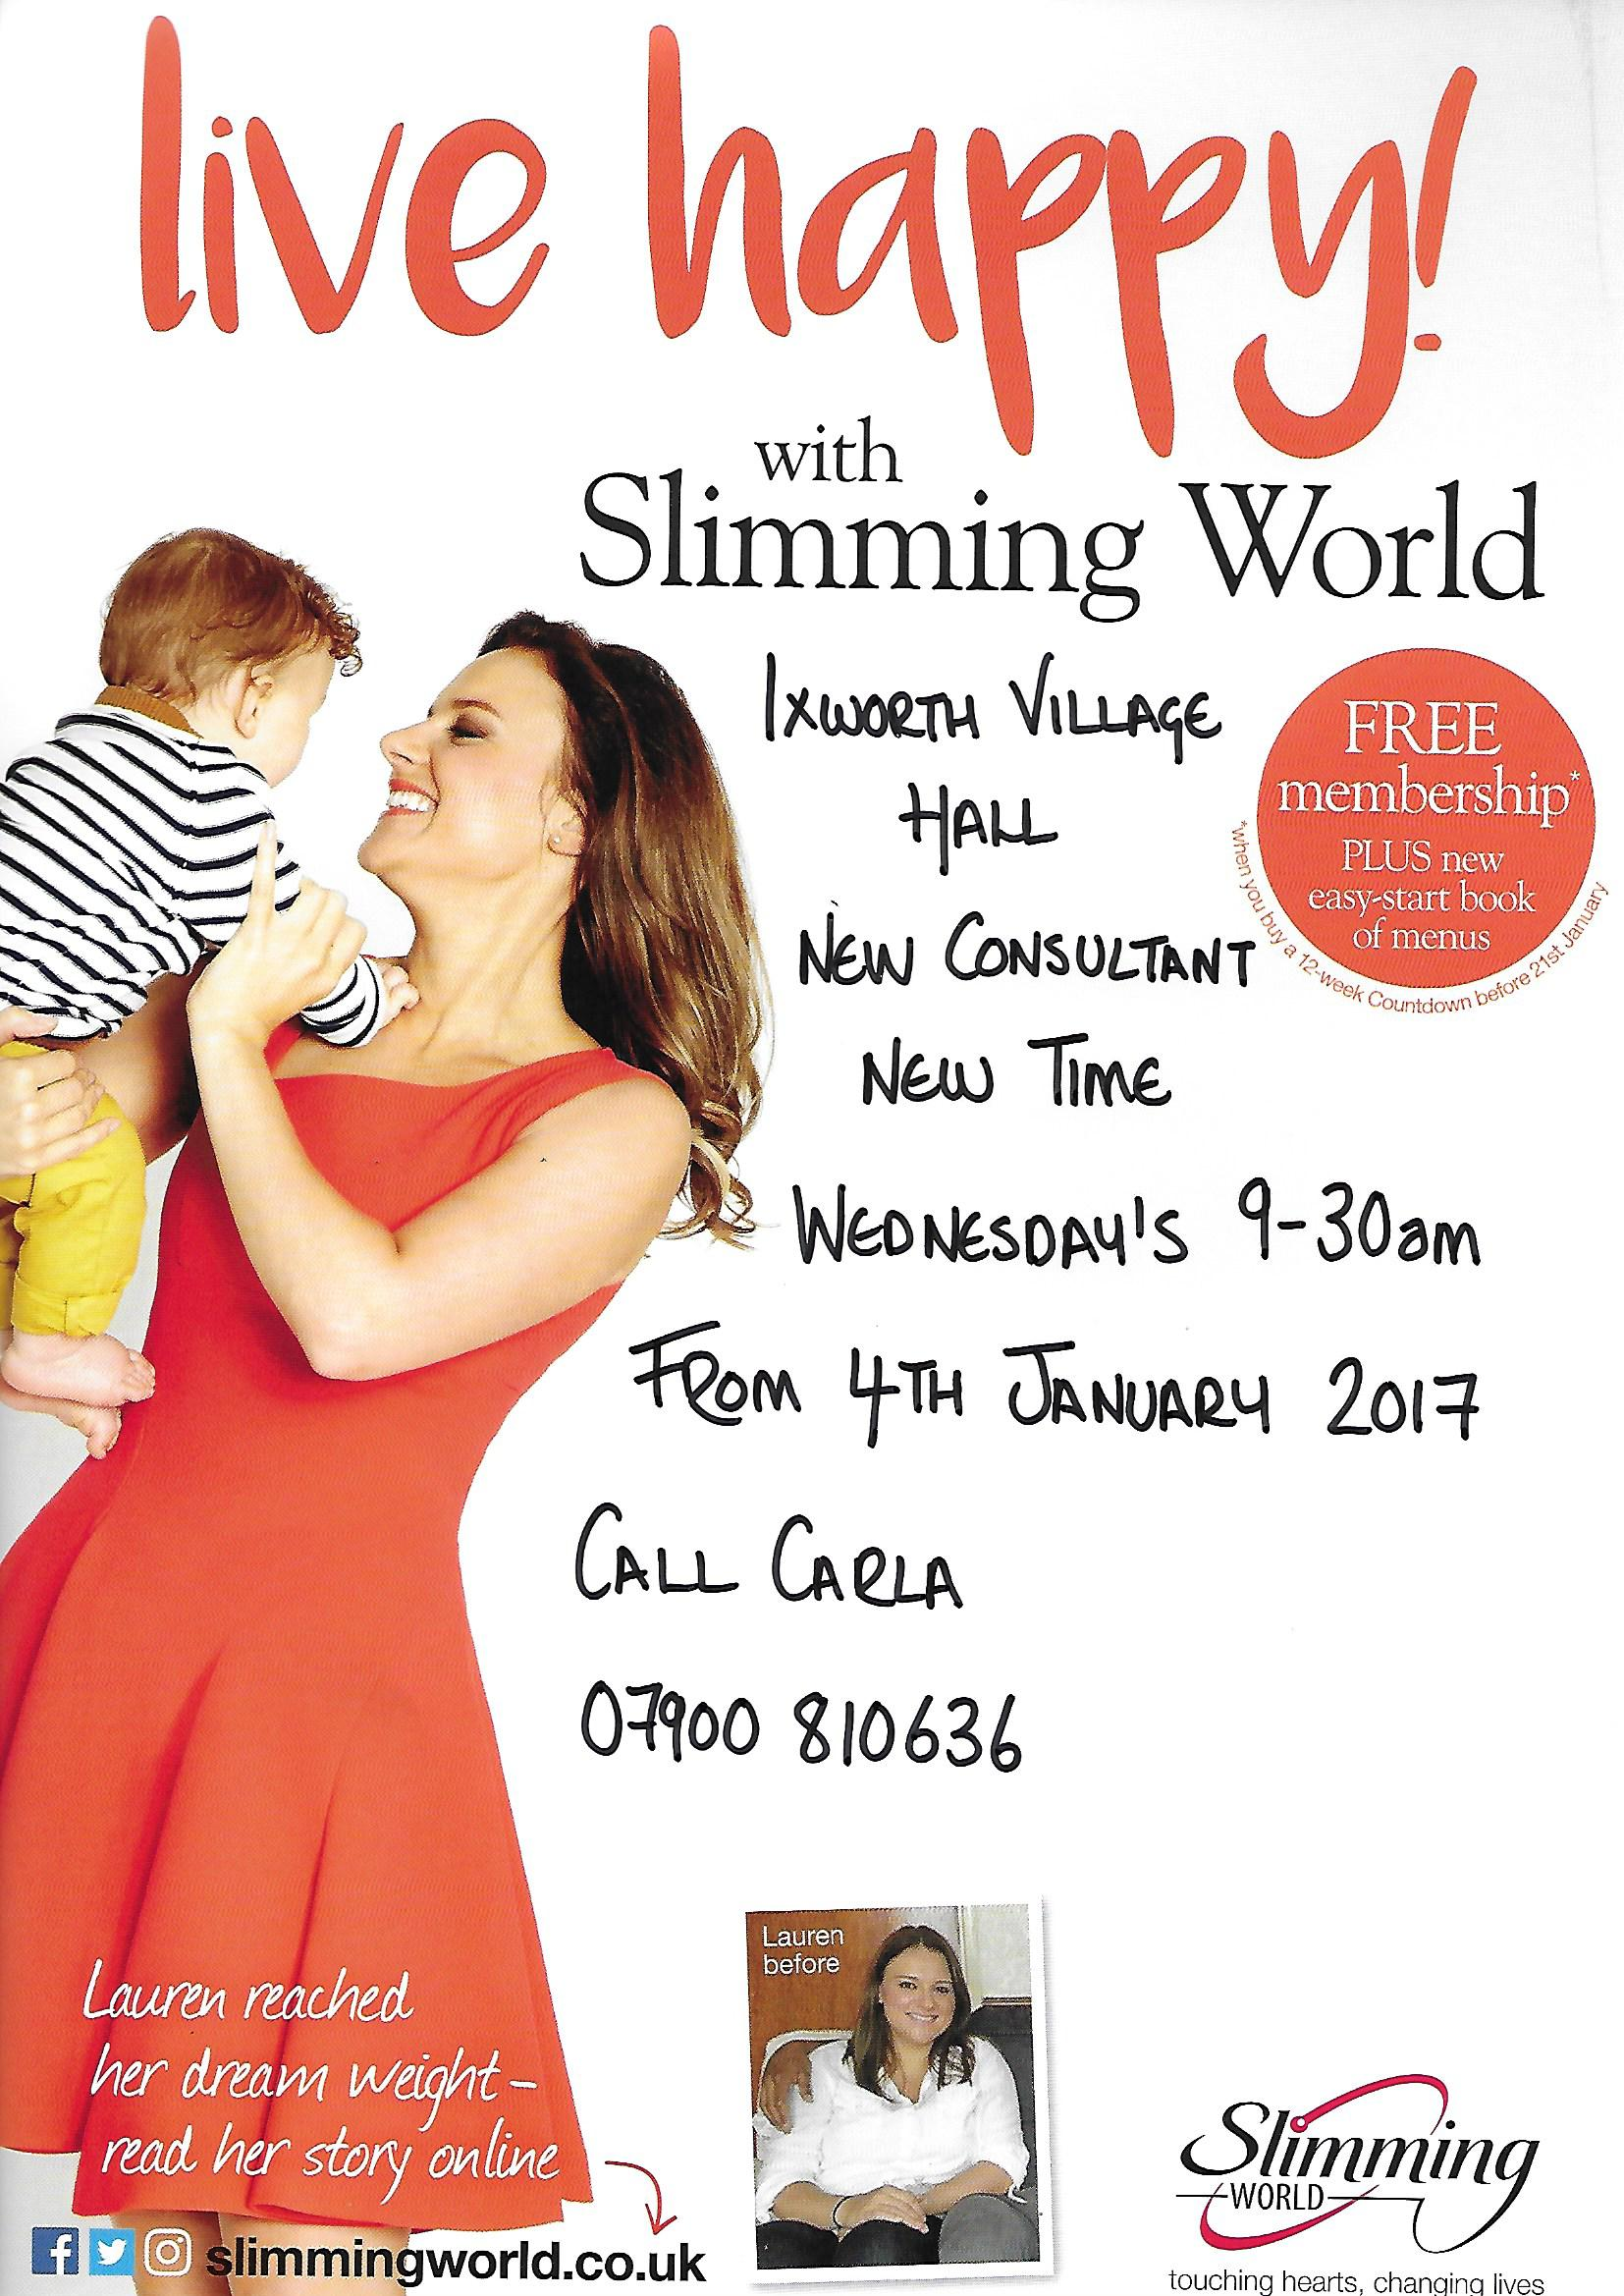 Slimming world ixworth village hall One you slimming world